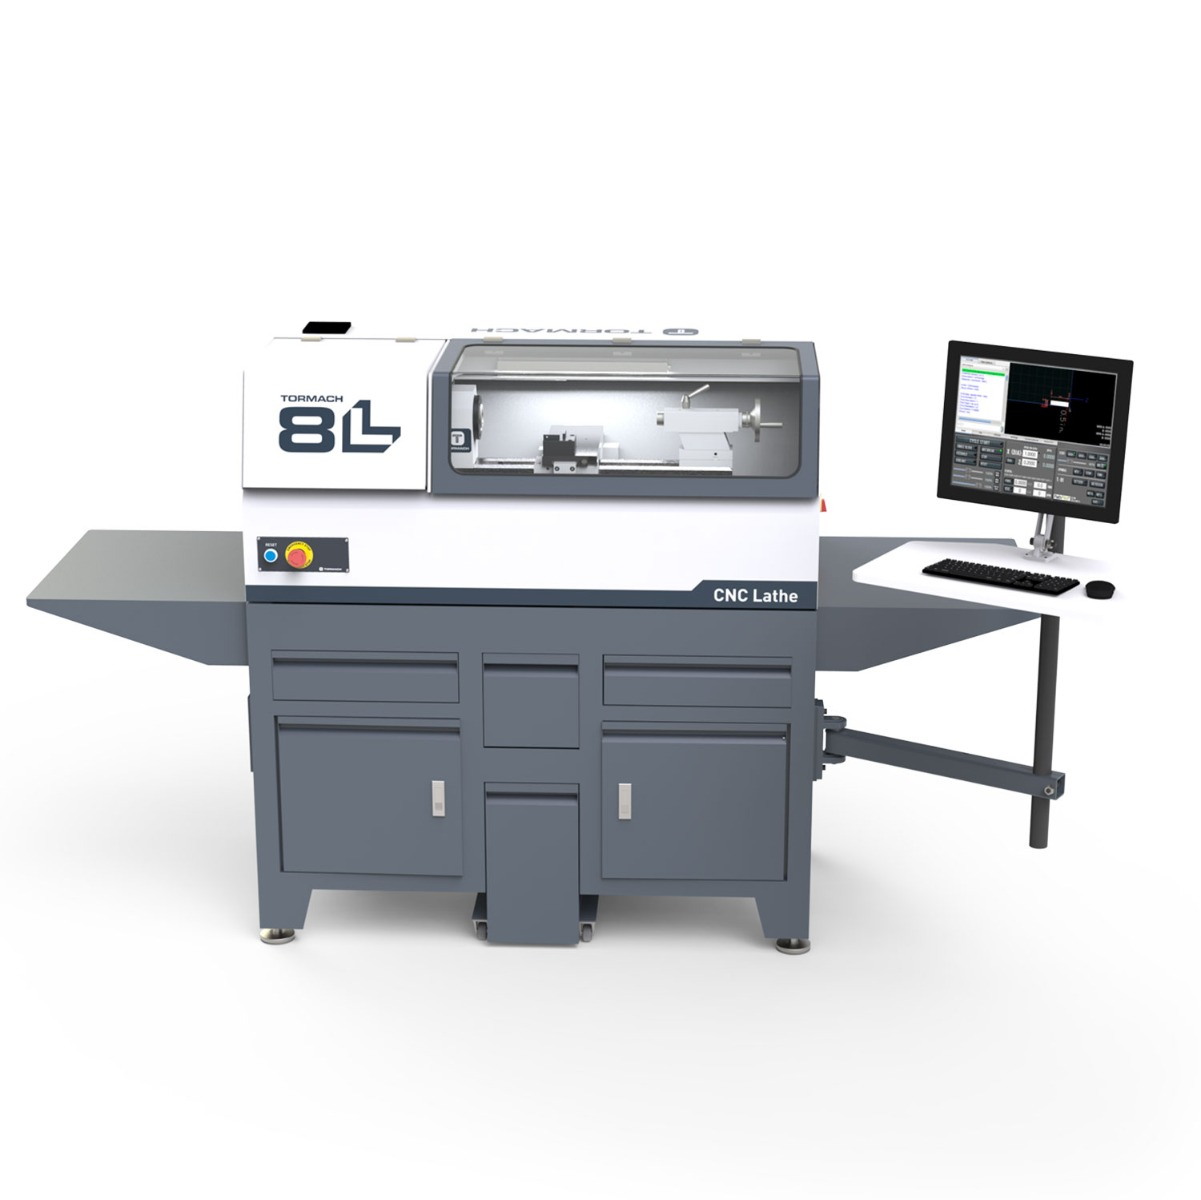 New 8L Lathe Deluxe Package from Tormach